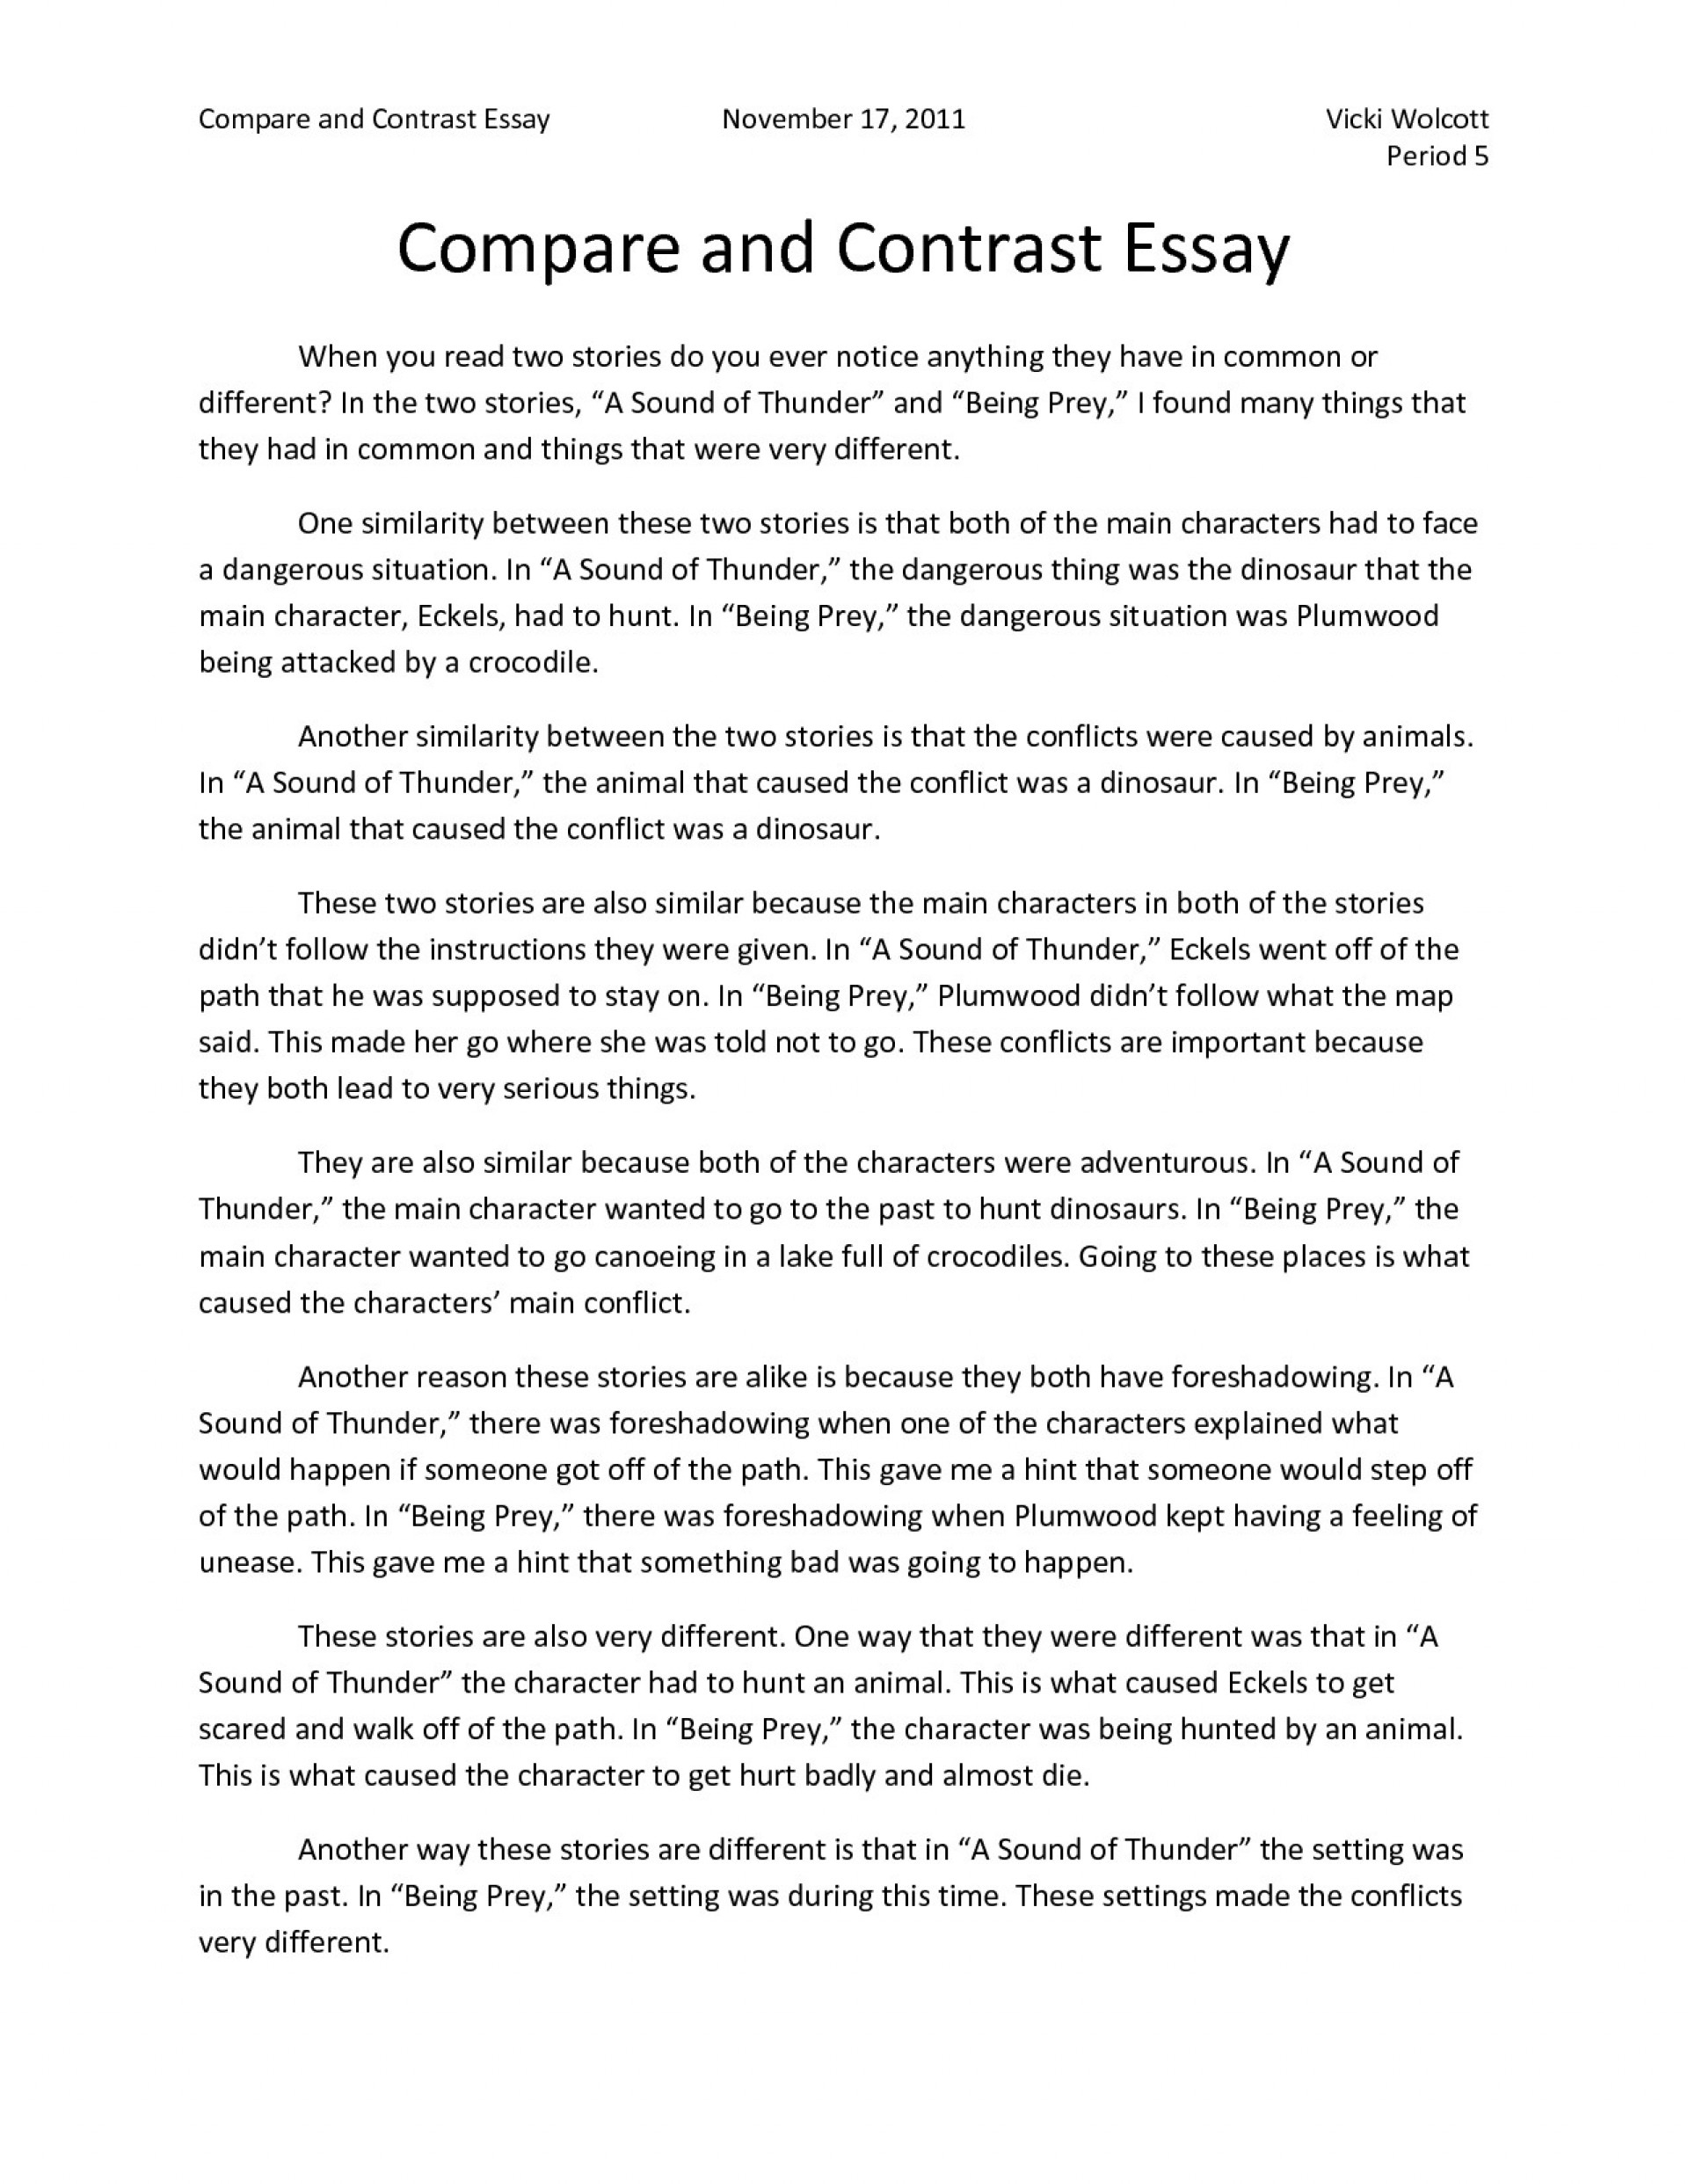 006 Comparing And Contrasting Essay Example Satire Examples Of Comparison Contrast Essays Com How To Write Outstanding A Compare Outline Ppt Middle School 1920